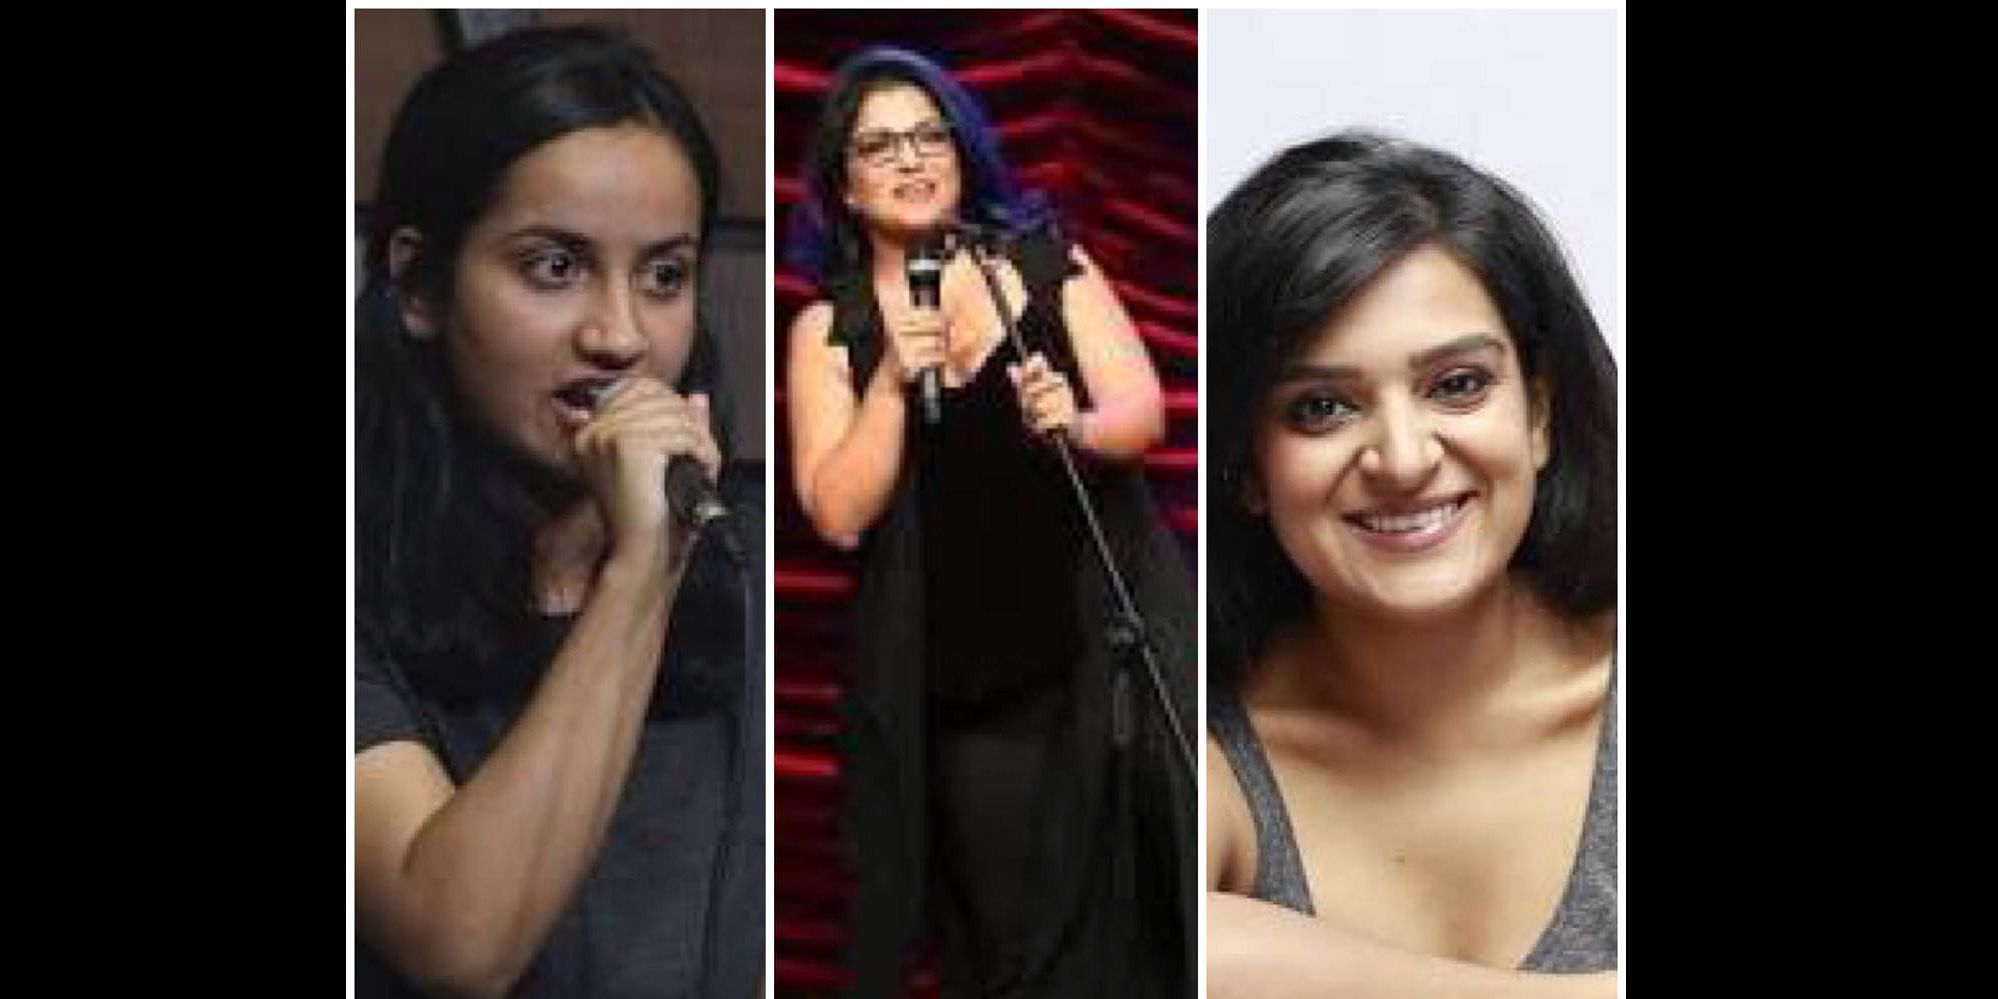 Where do women stand when it comes to stand up comedy?